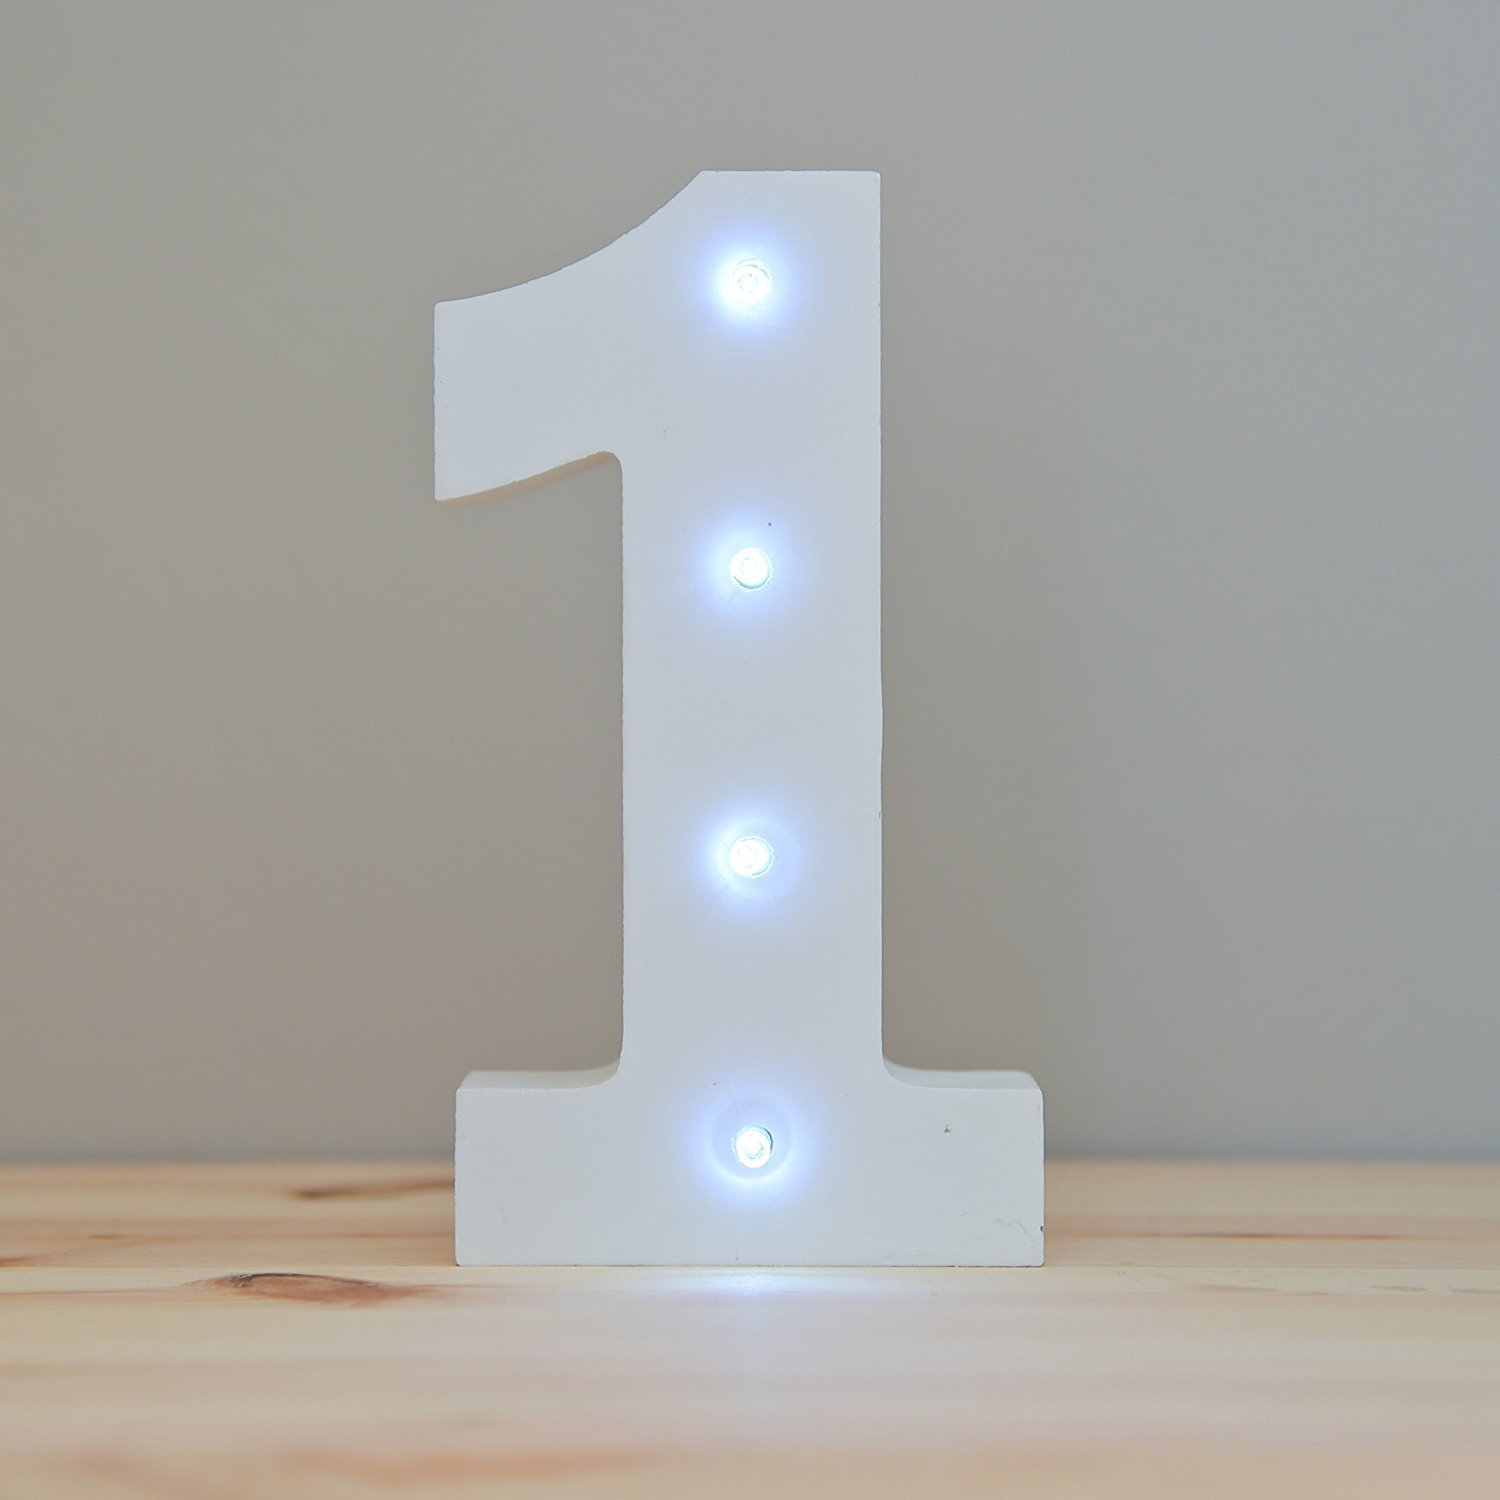 WONFAST Decorative Light Up Wooden Number Letters, White Wood Marquee LED Number Lights Sign Party Wedding Decor Battery Operated Number (1)